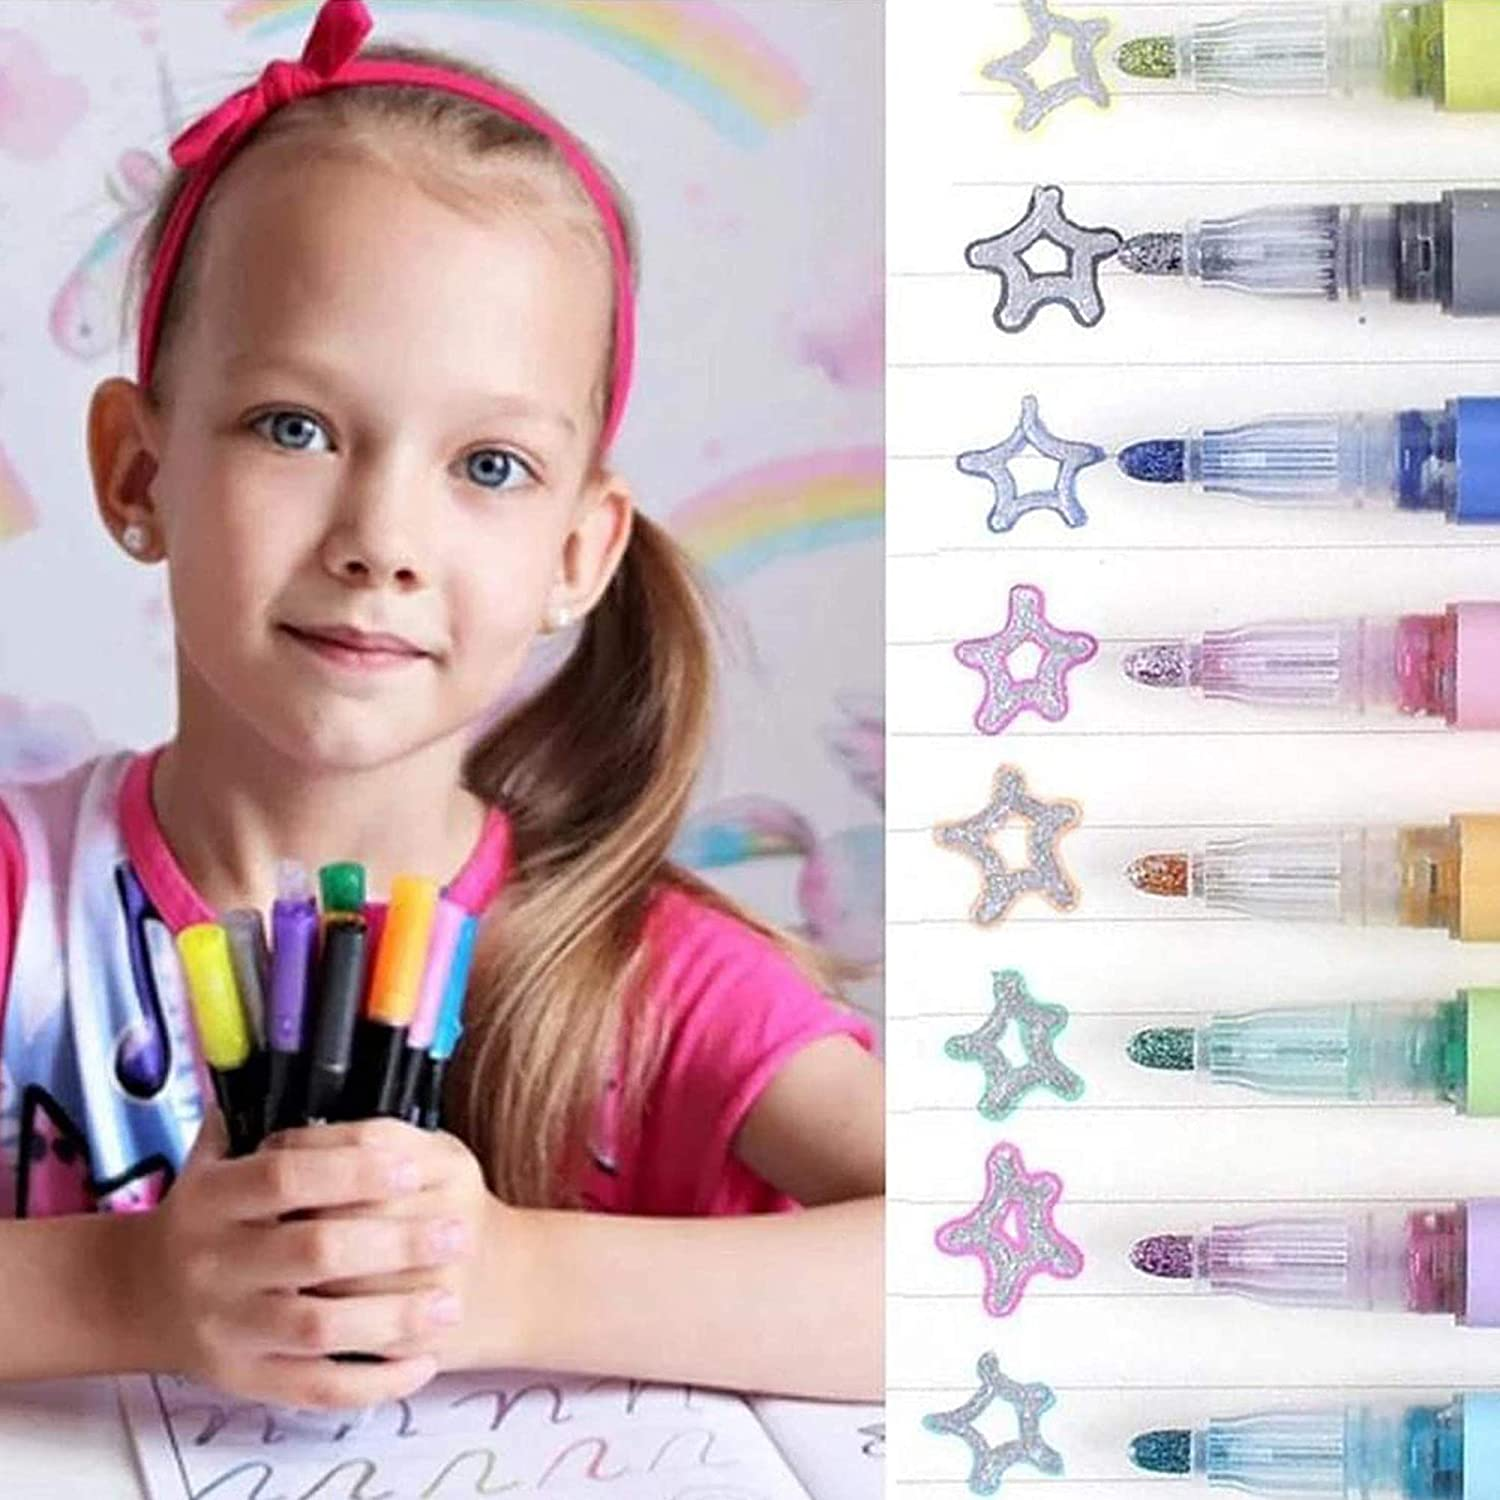 Double Line Outline Pen Markers,Magic Shimmer Paint Pens,12 Colors Marker Pen for Highlight for Drawing//Painting//Posters//DIY Art Crafts Doodle Dazzle Markers